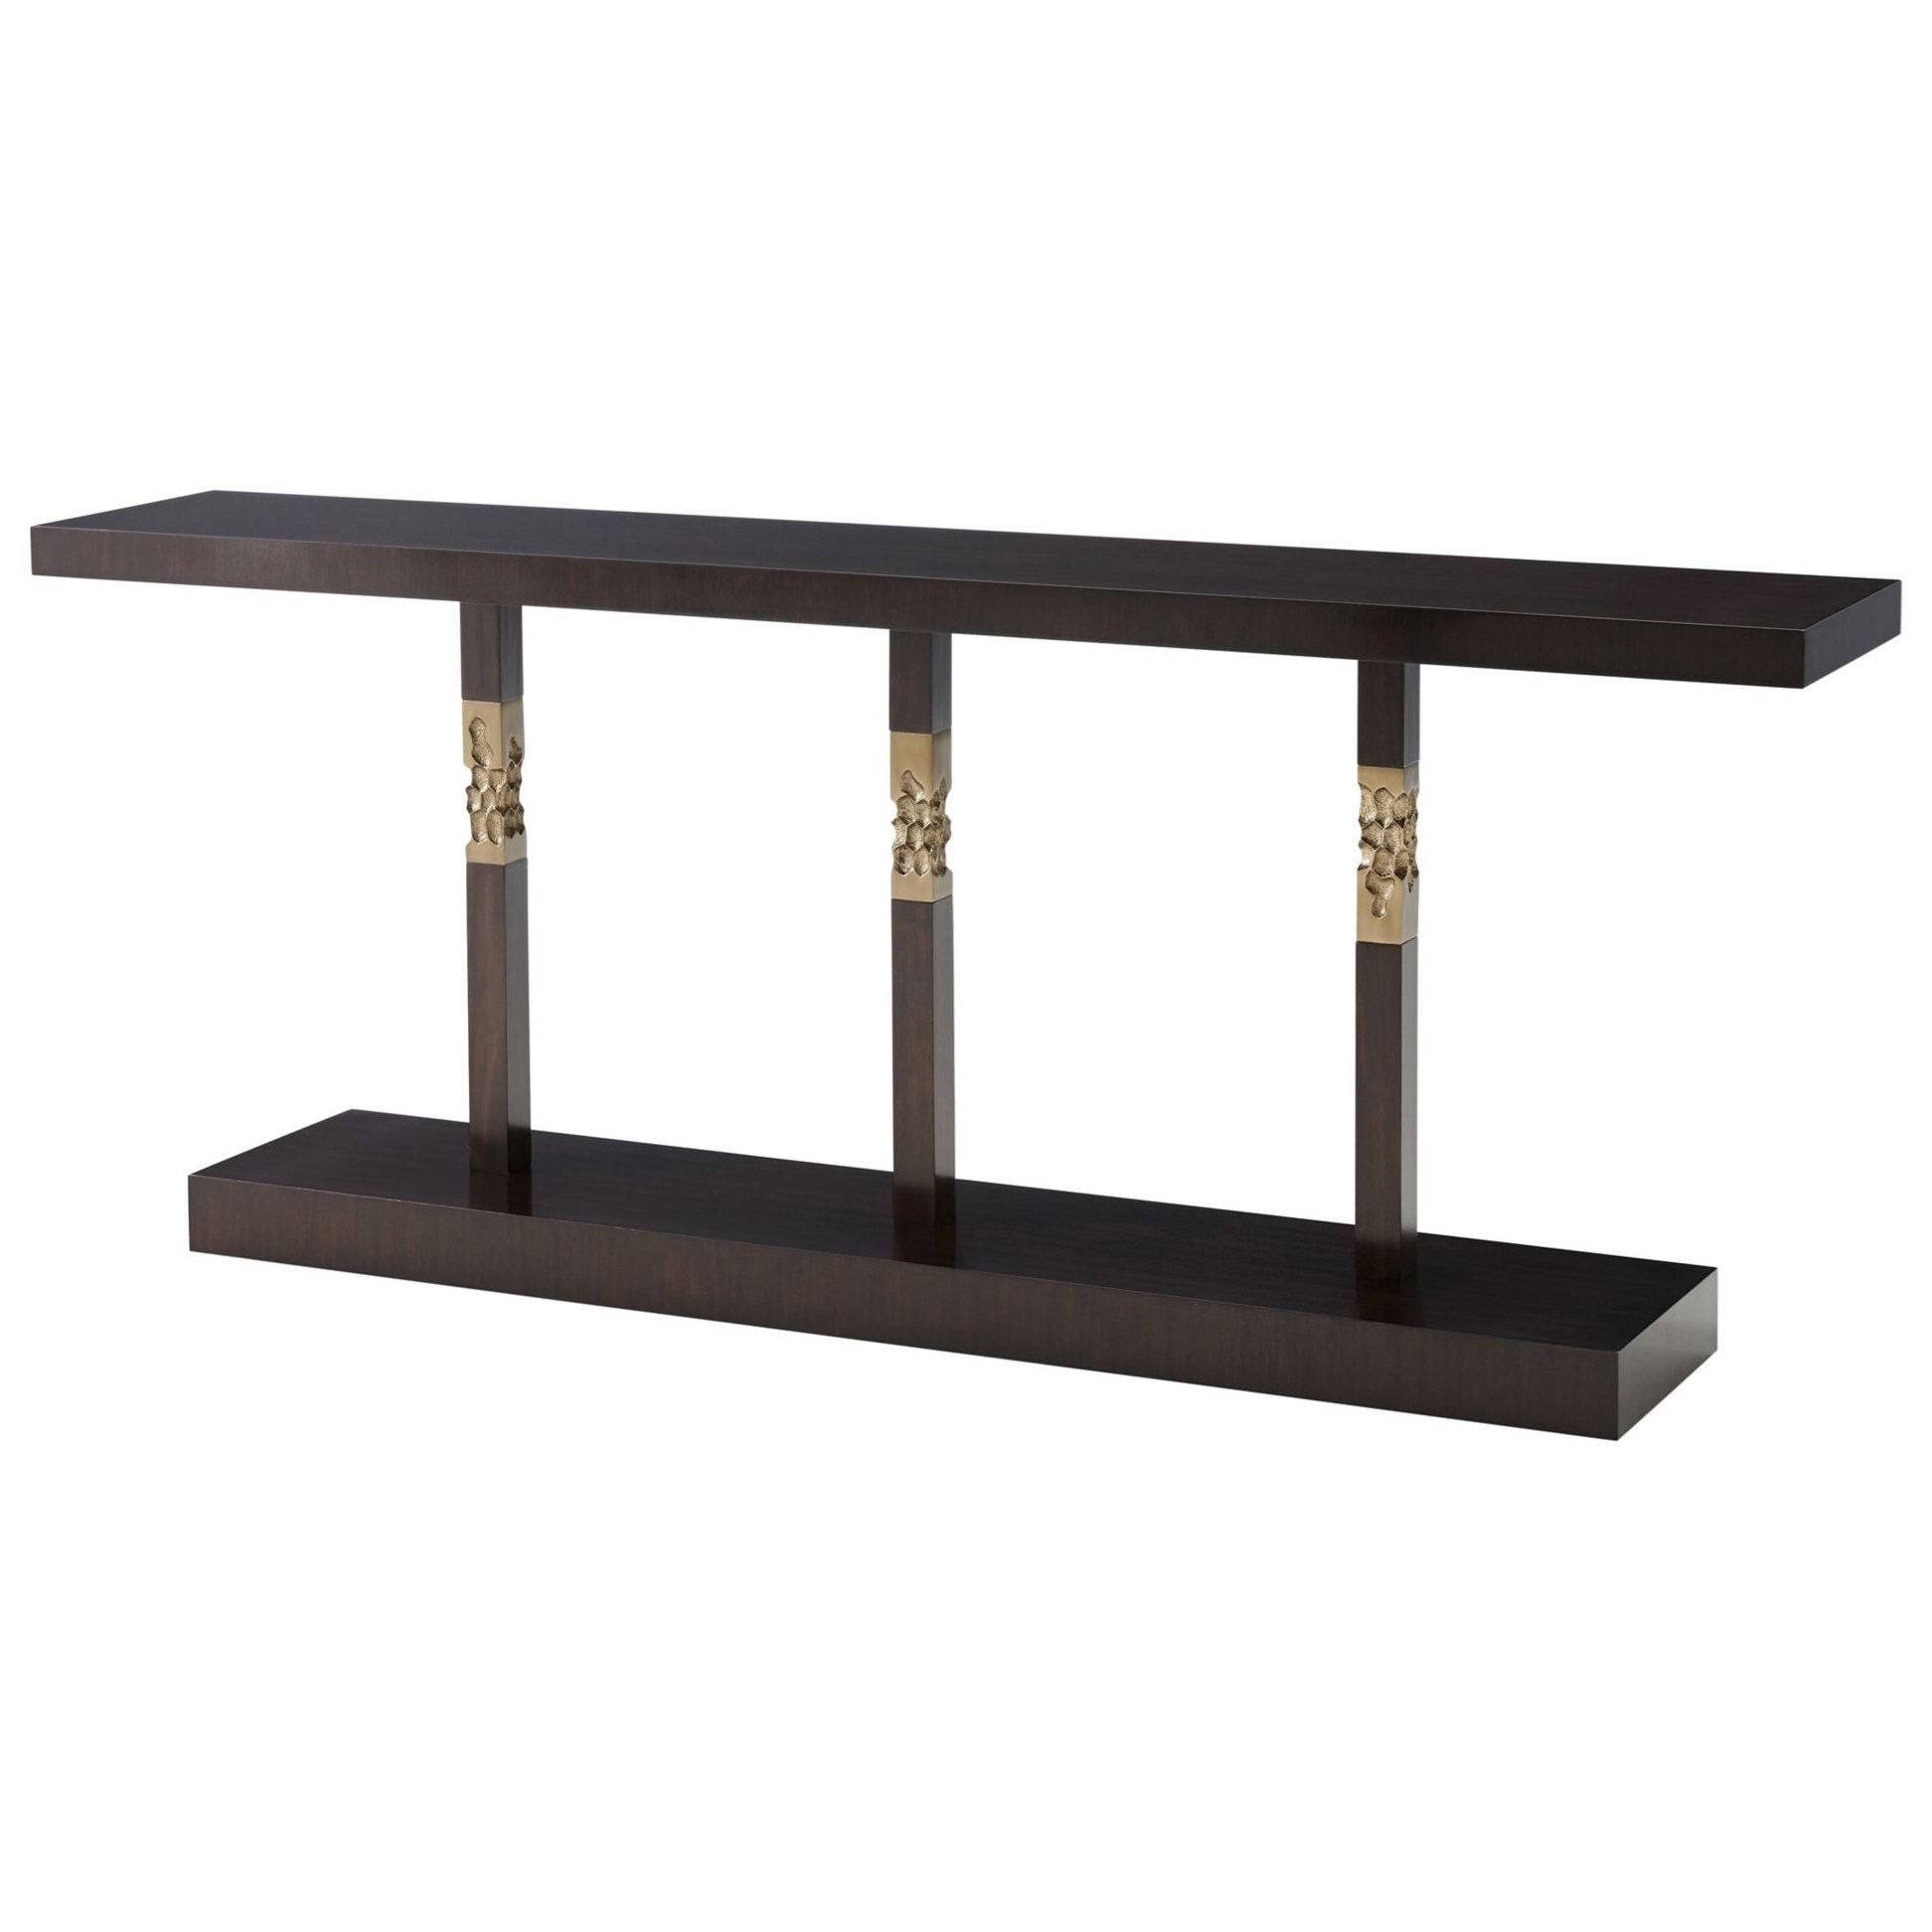 Theodore Alexander Tables Erno Console Table - Item Number: 5305-319